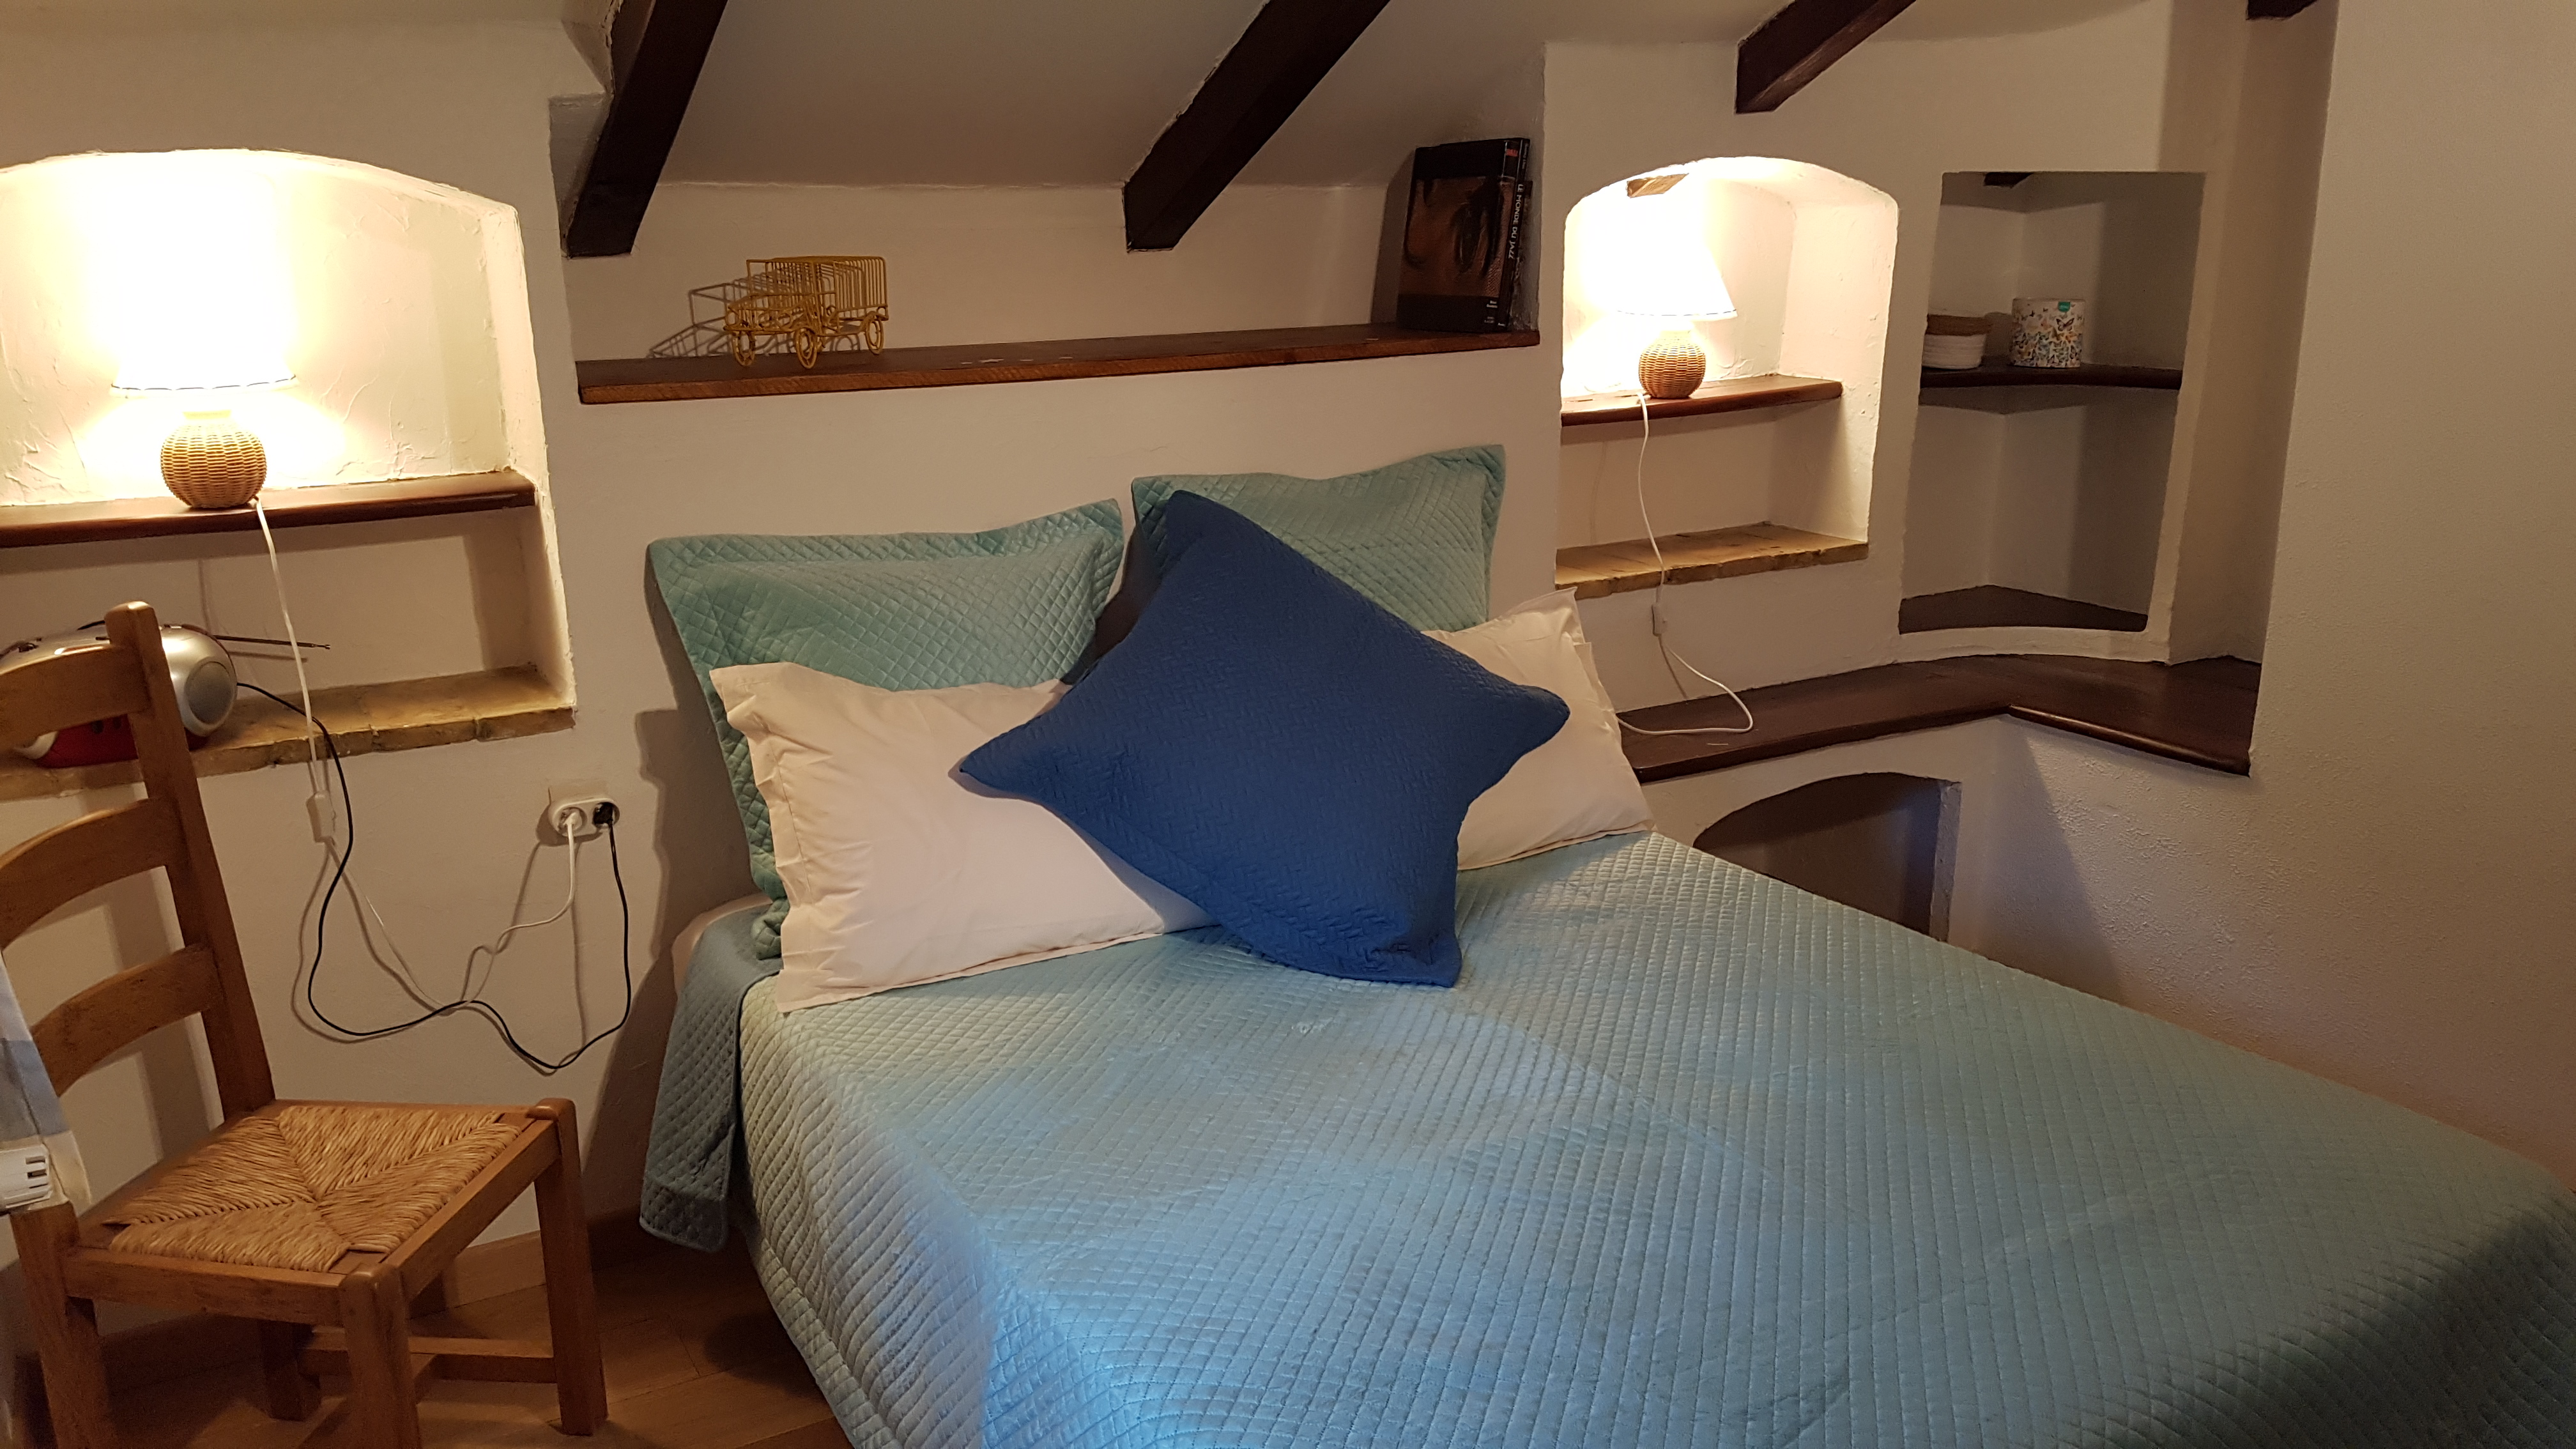 Chalet Sainte Marie Valberg – Chambres d hotes Valberg – Bed and